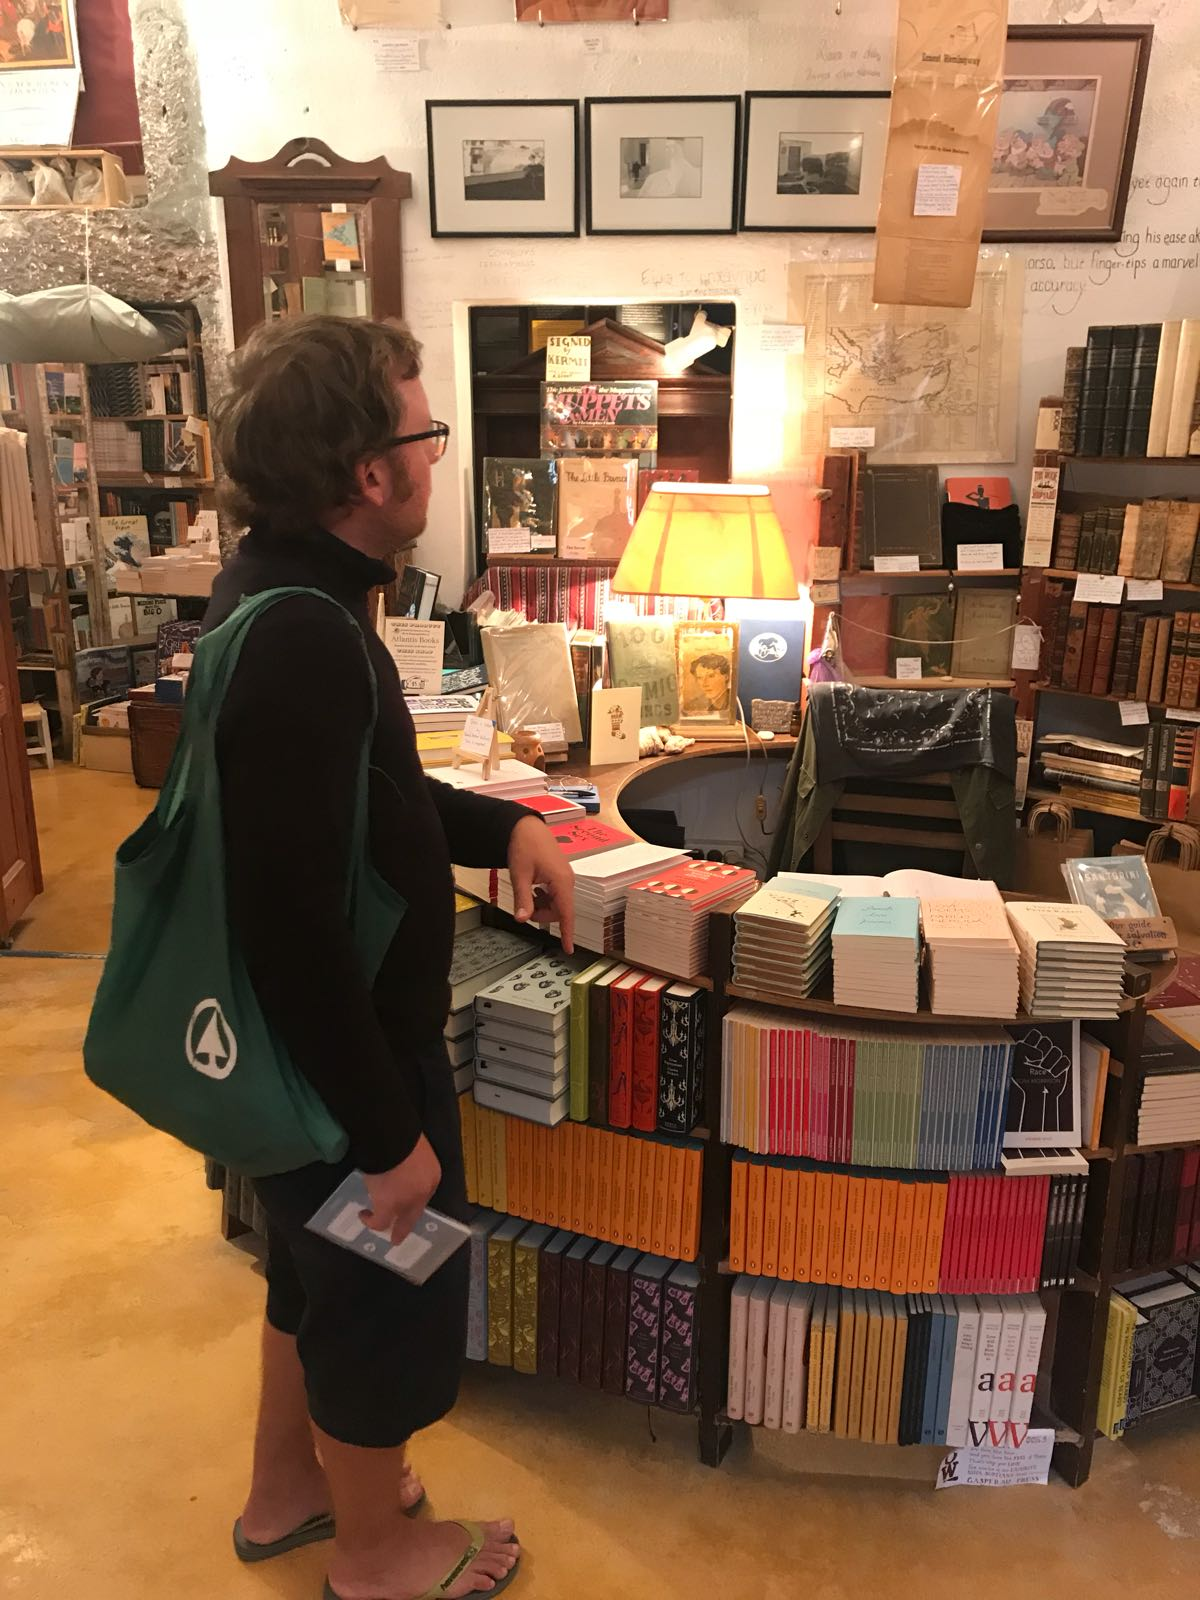 Tom browsing the collection in Atlantis books